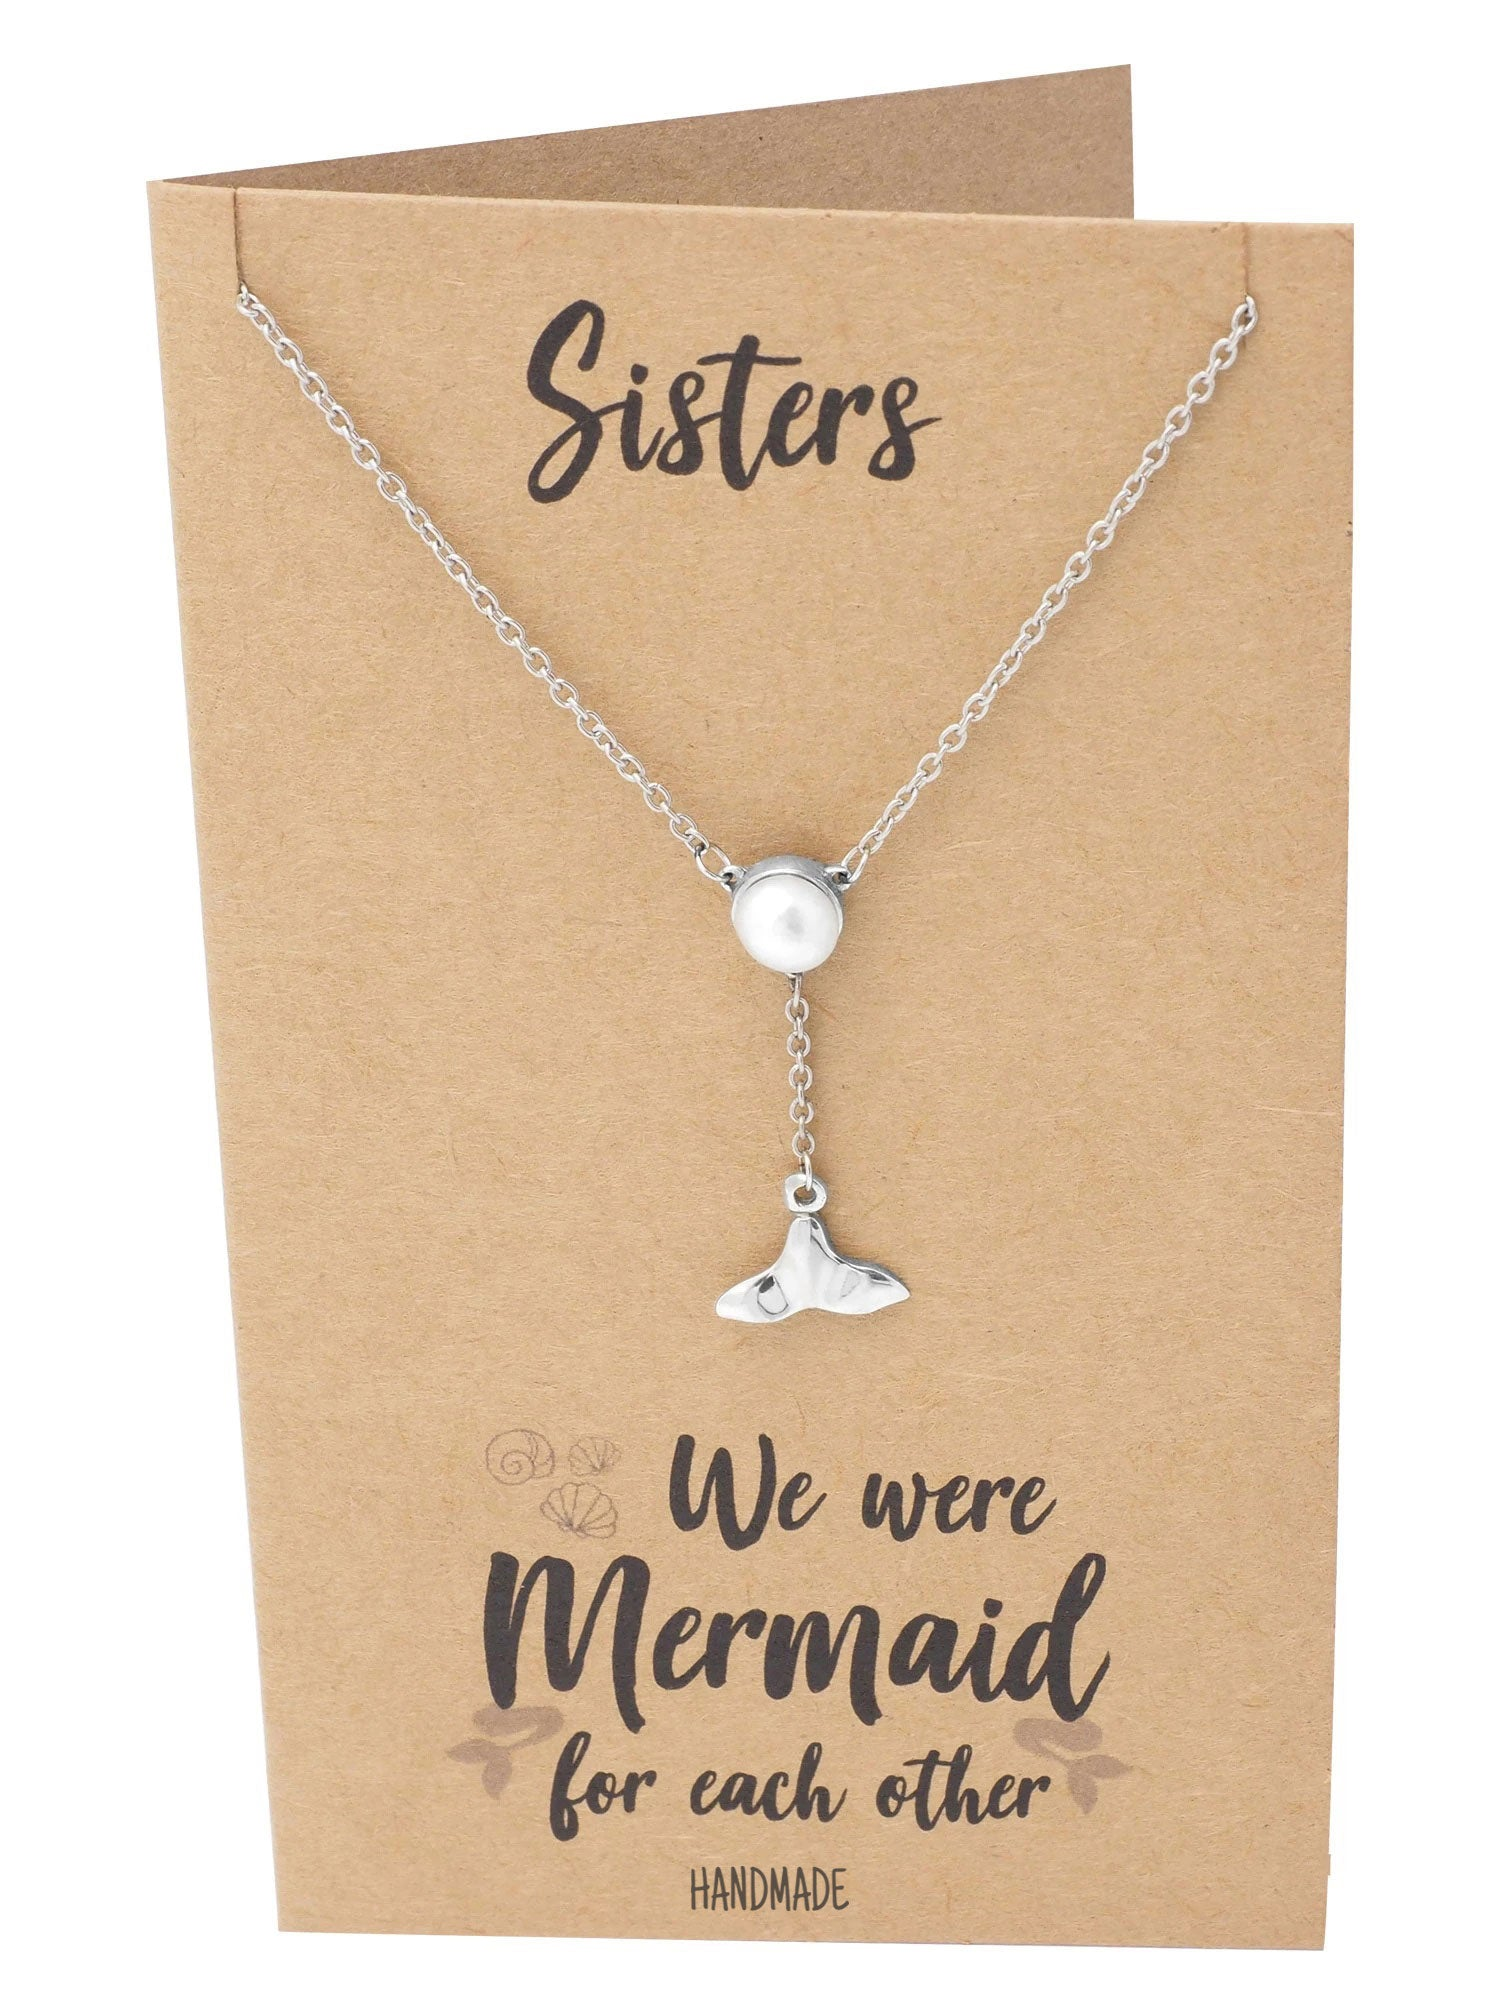 Helen Pearl and Mermaid Tail Necklace for Women, Sister Gifts Jewelry Greeting Card